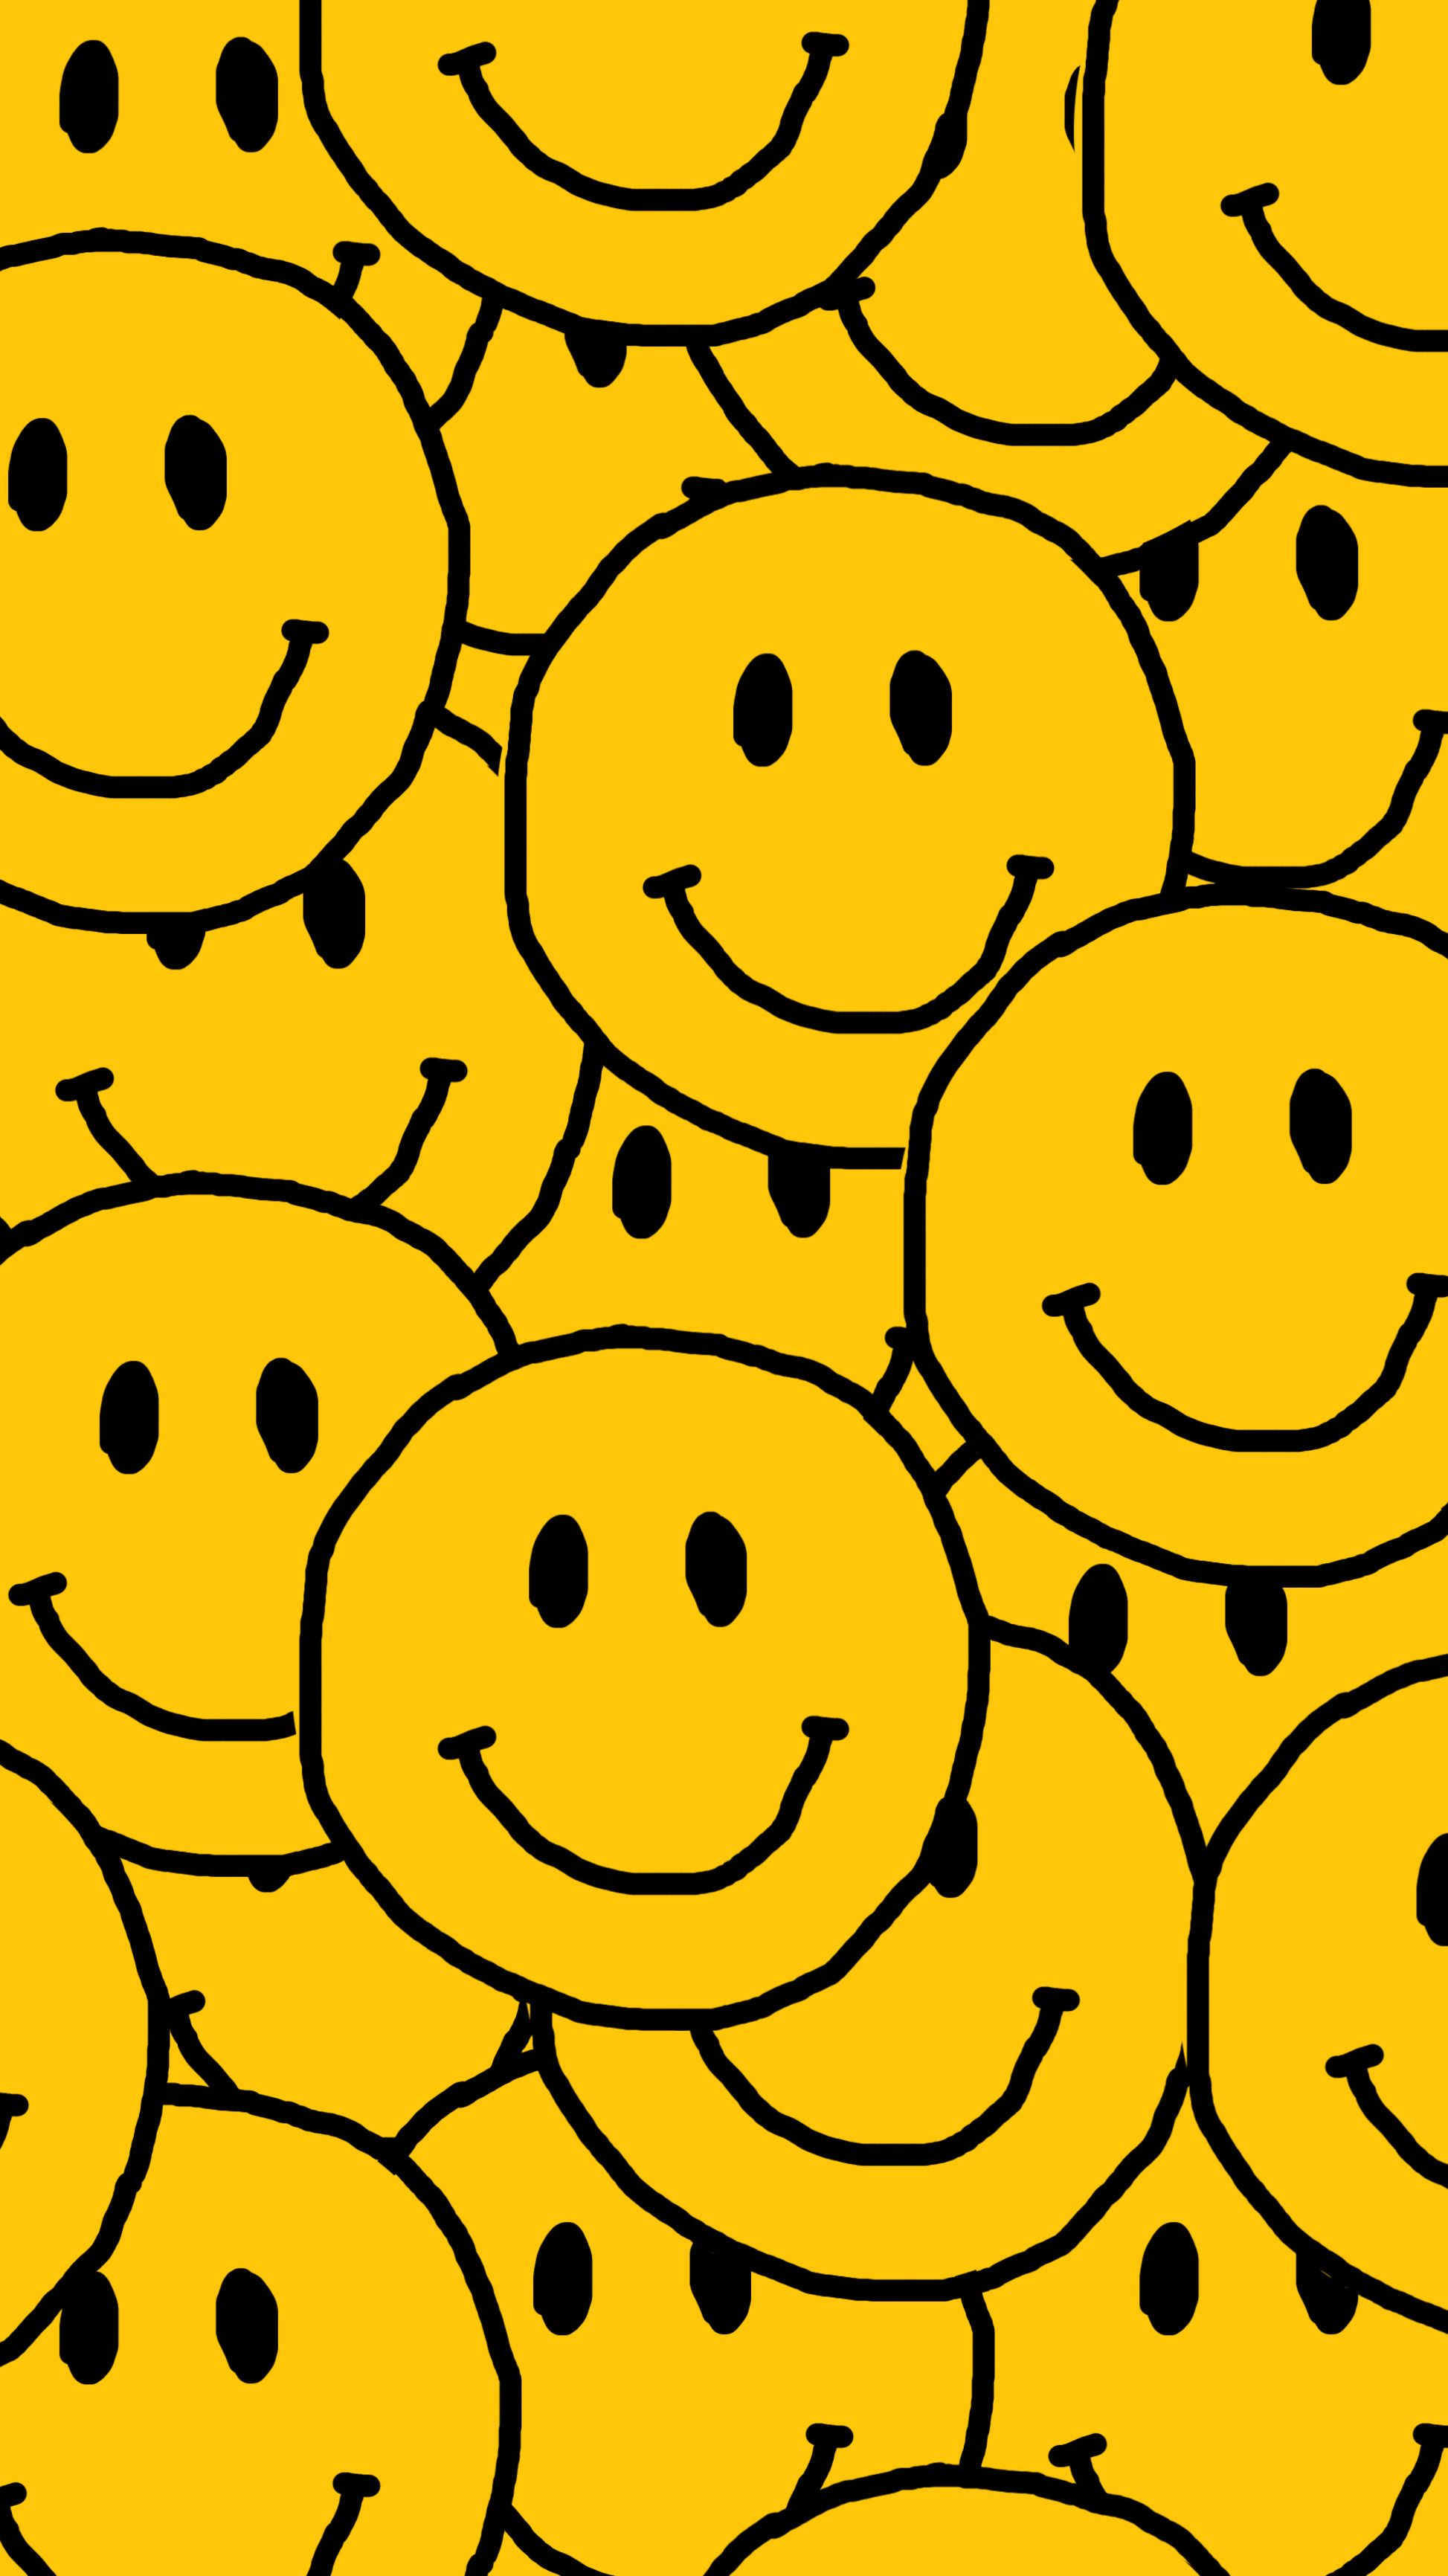 Smiley Face For Overlap Wallpaper Hippie Wallpaper Cute Patterns Wallpaper Art Collage Wall